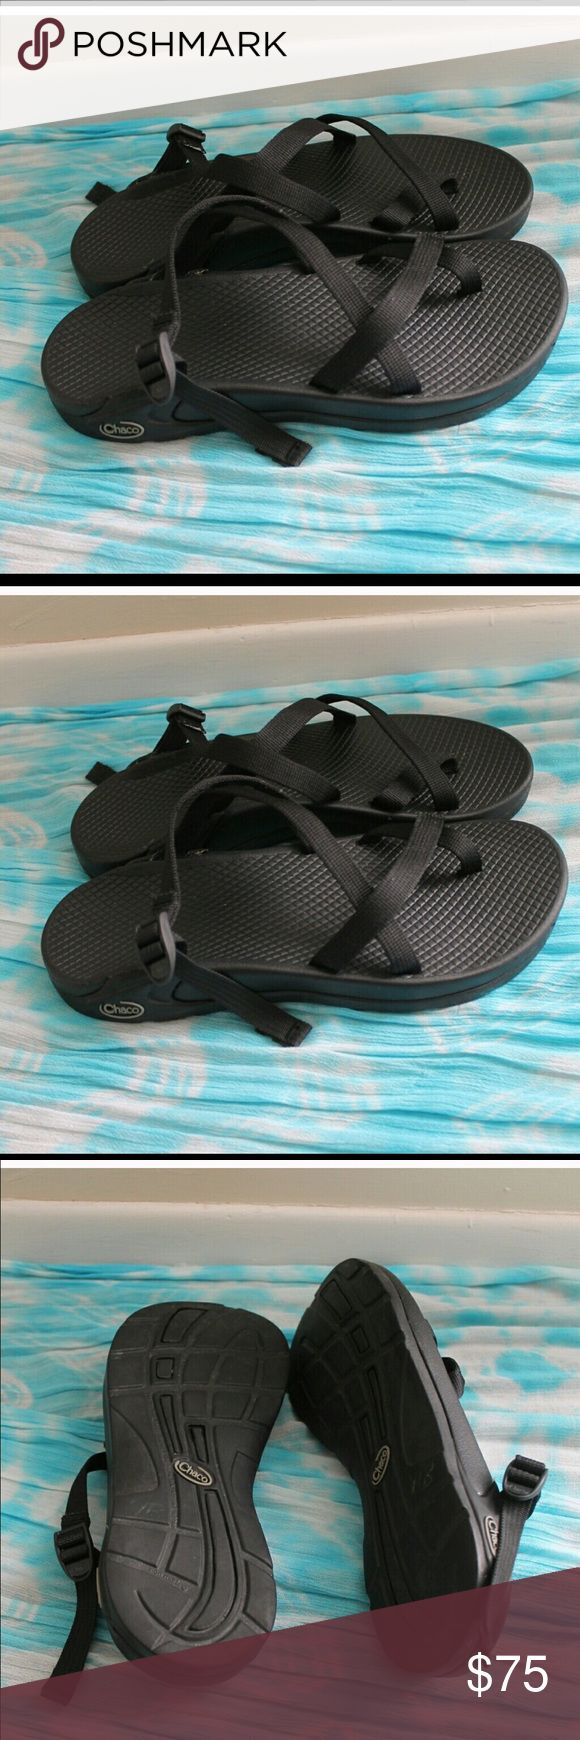 Women's size 8 black chacos Barely worn chacos. Women's size 8 Chacos Shoes Sandals